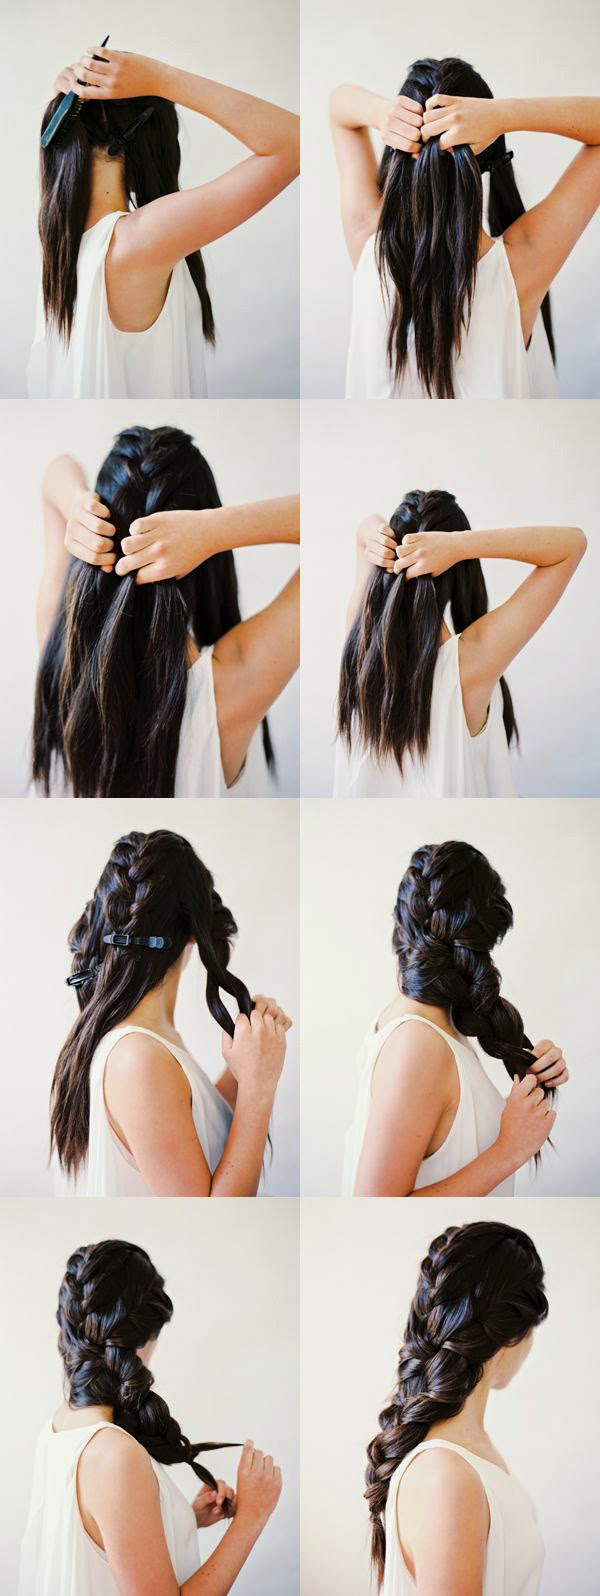 INTERWOVEN STRAND BRAID TUTORIAL